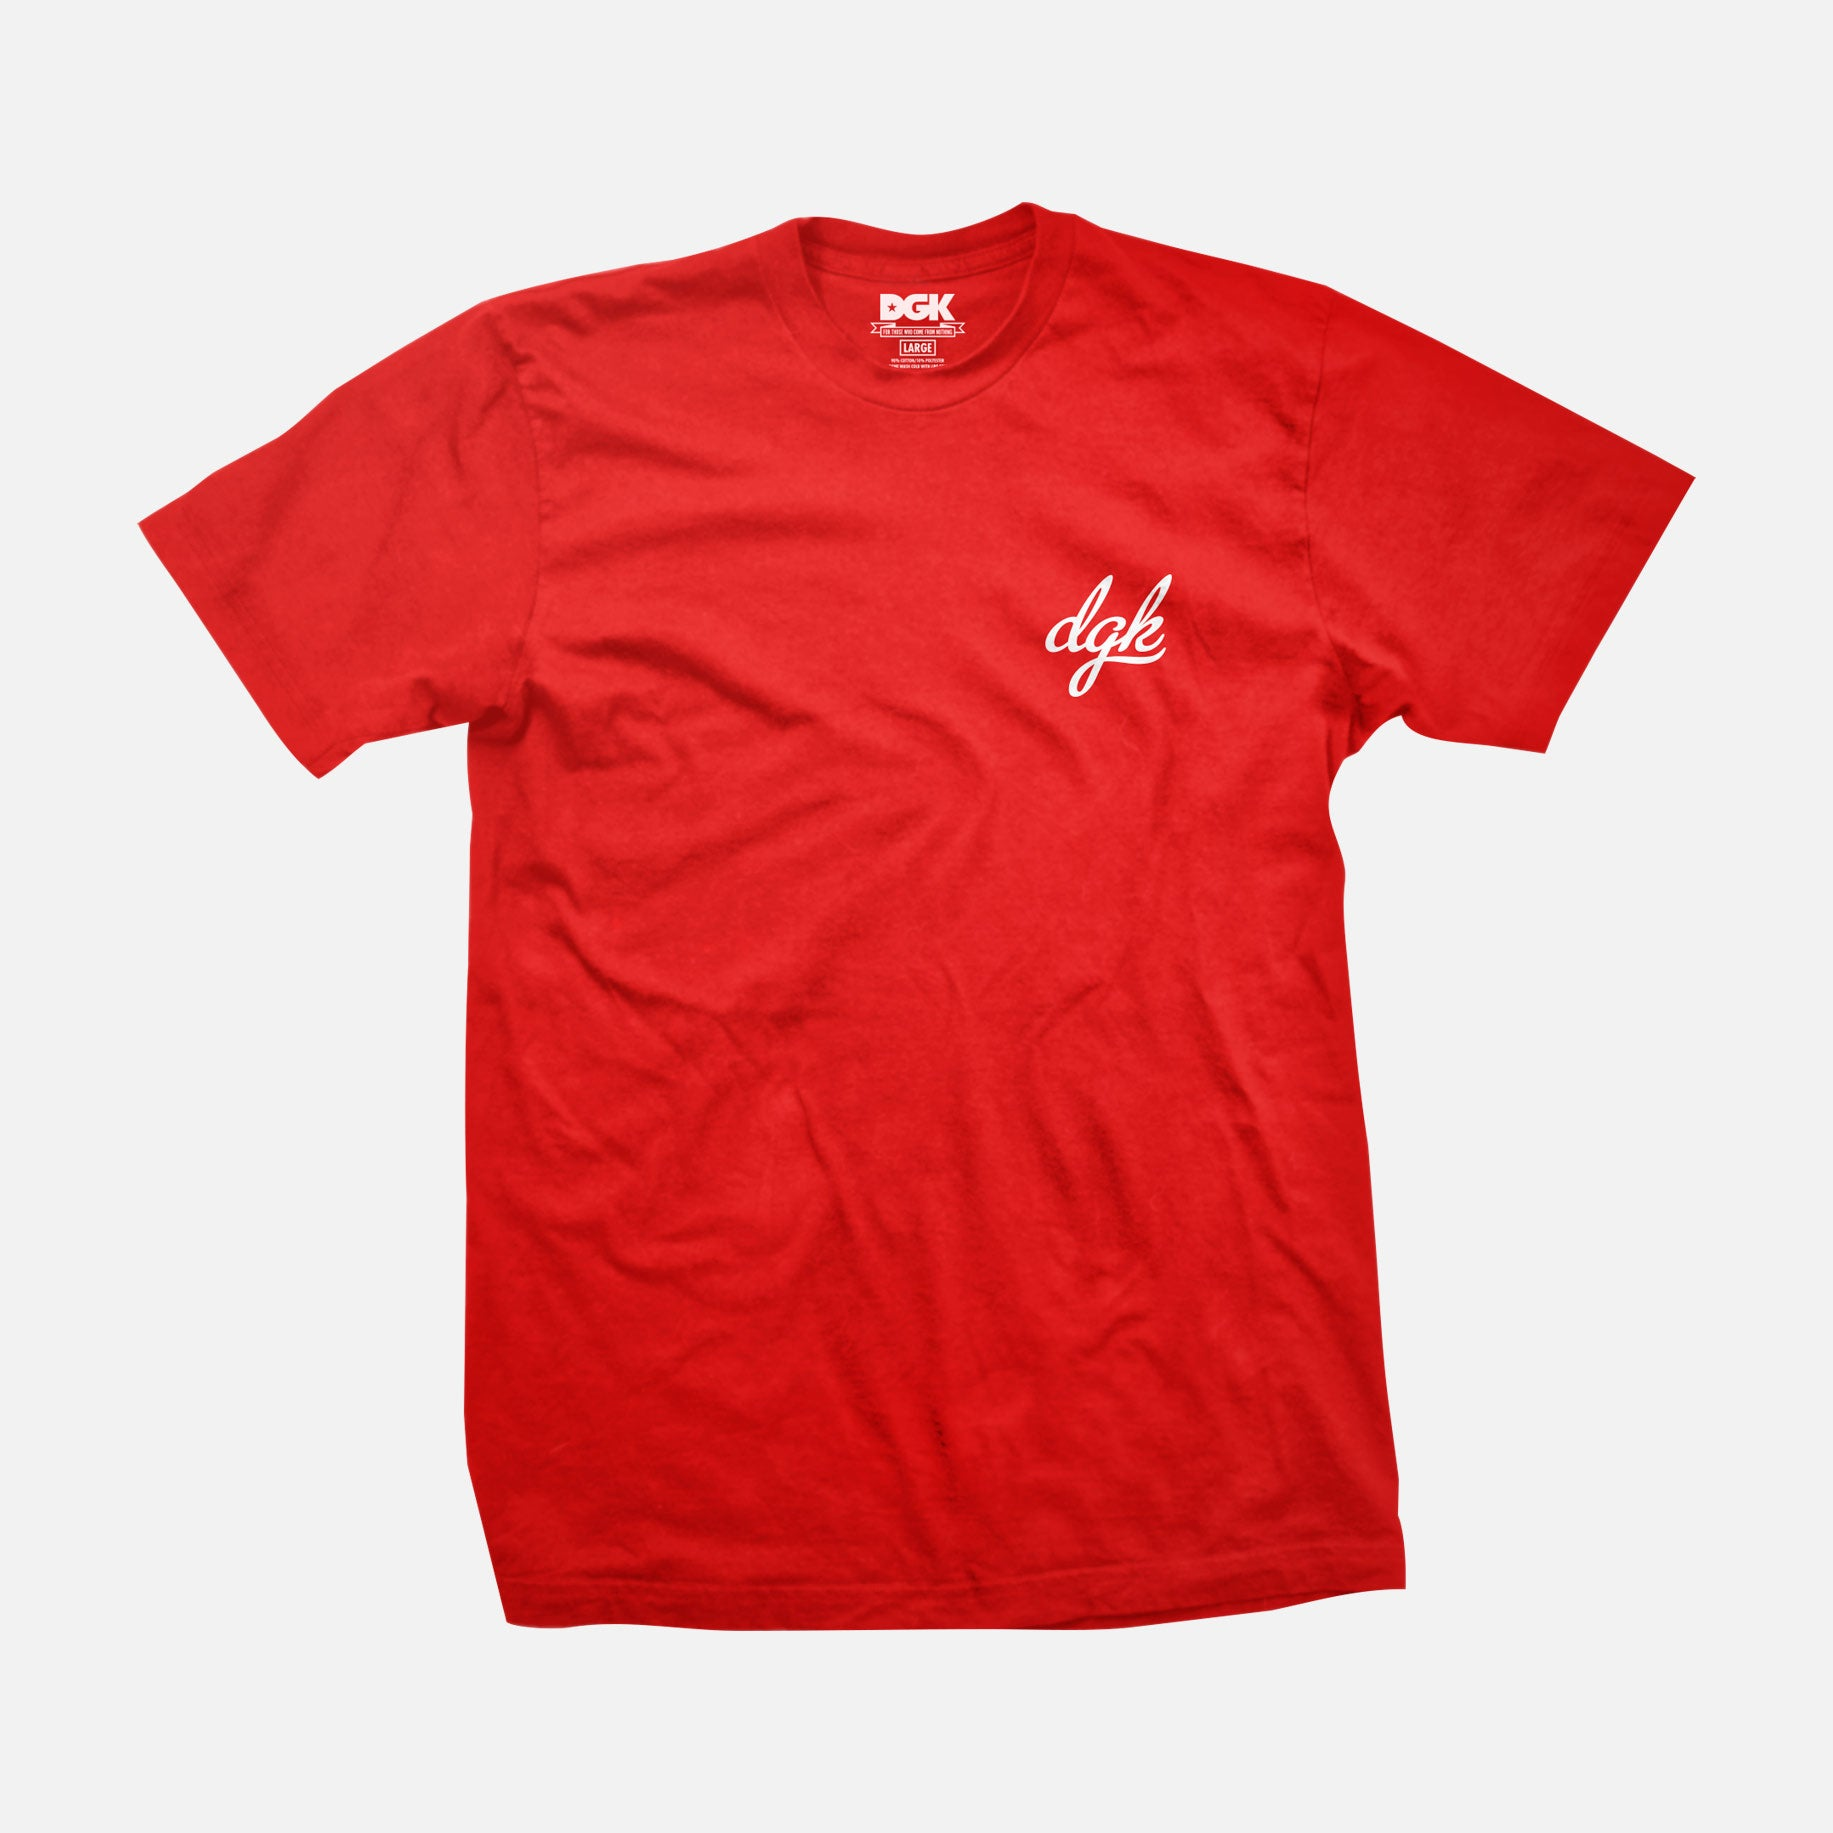 DGK Mini Script T-Shirt Red